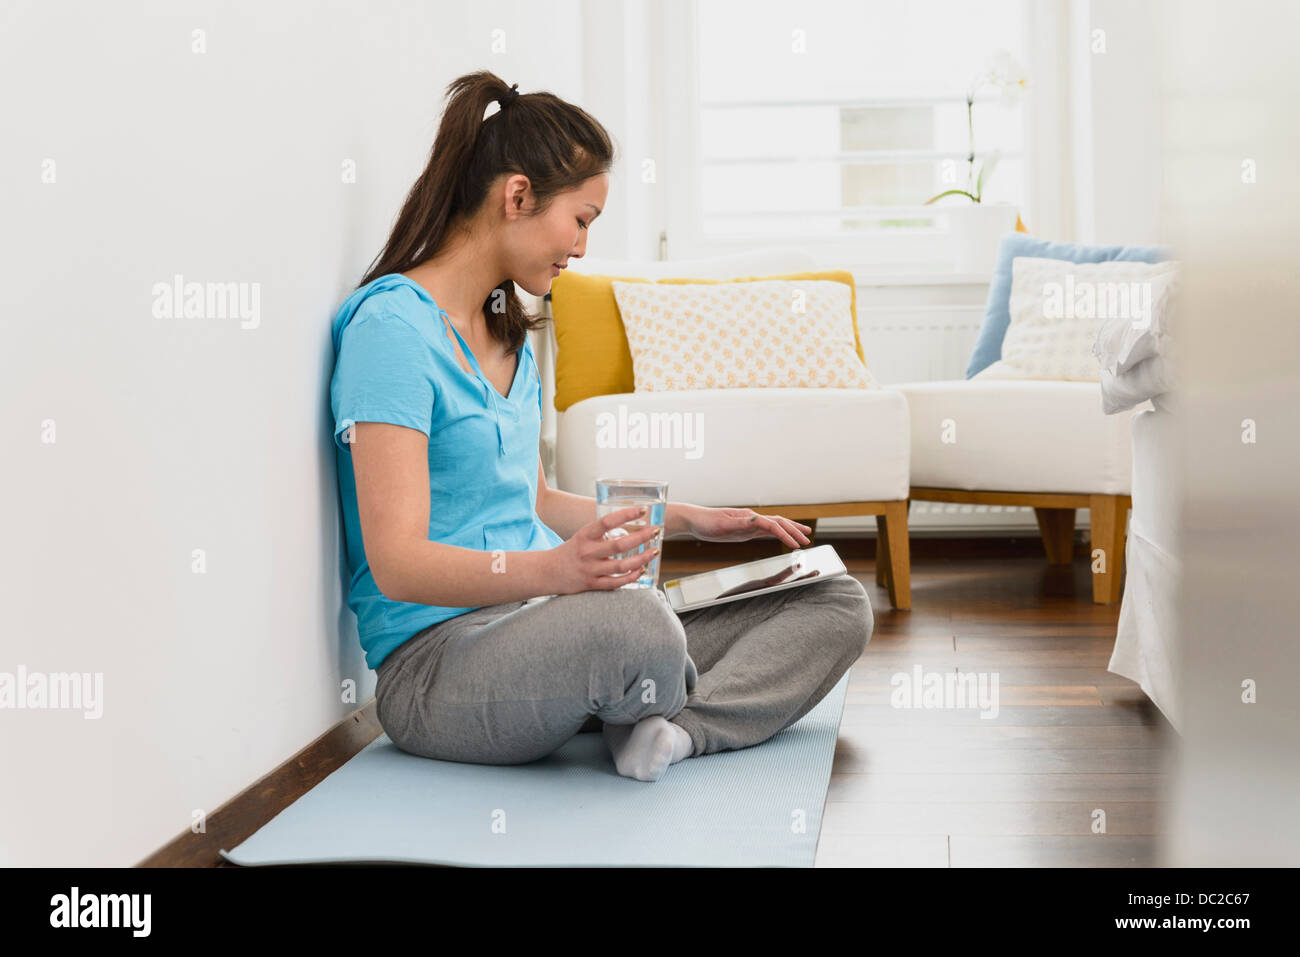 Woman sitting on mat using digital tablet Stock Photo